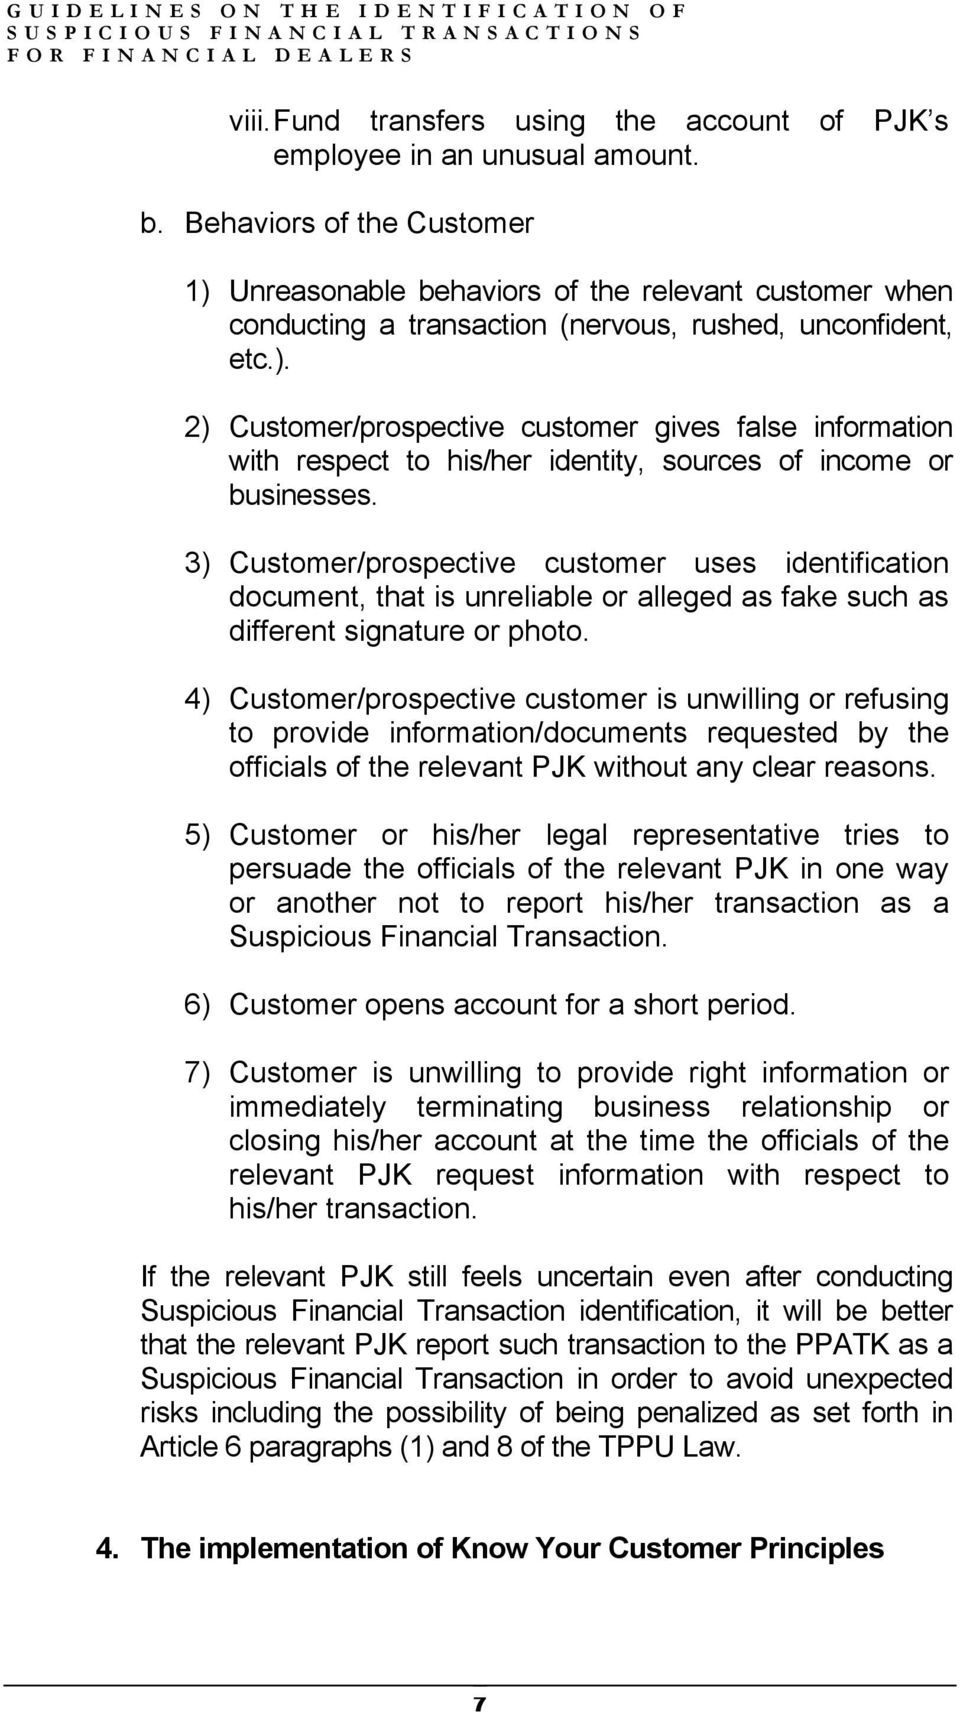 3) Customer/prospective customer uses identification document, that is unreliable or alleged as fake such as different signature or photo.